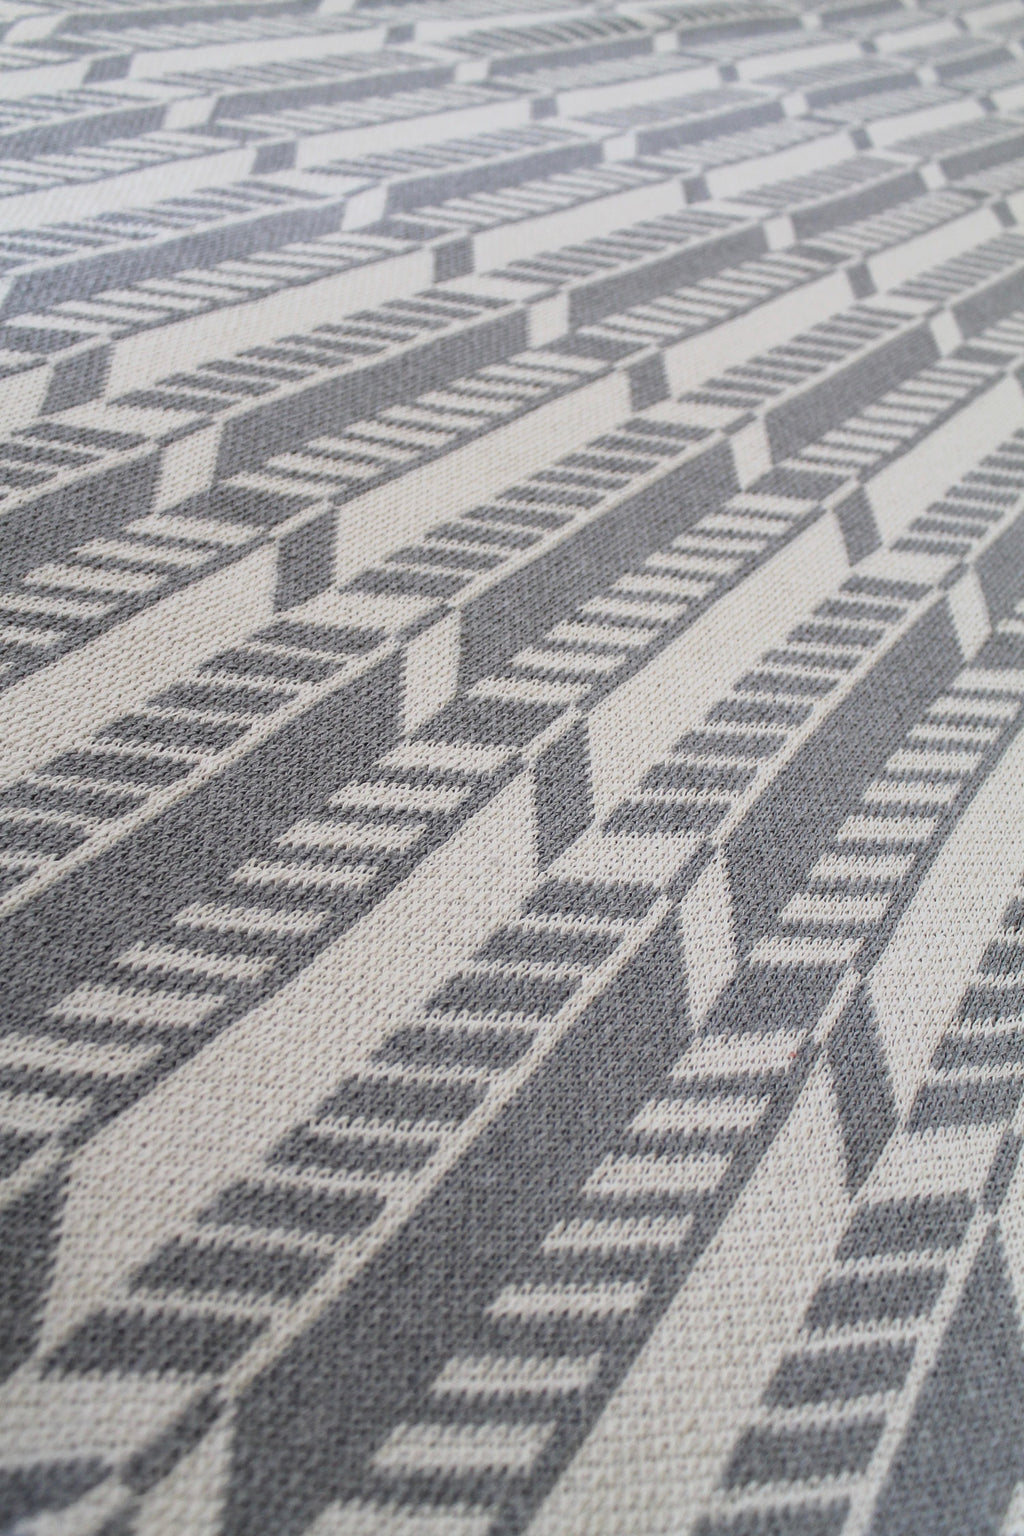 Up Close Shot of Eco Cotton Woven Blanket